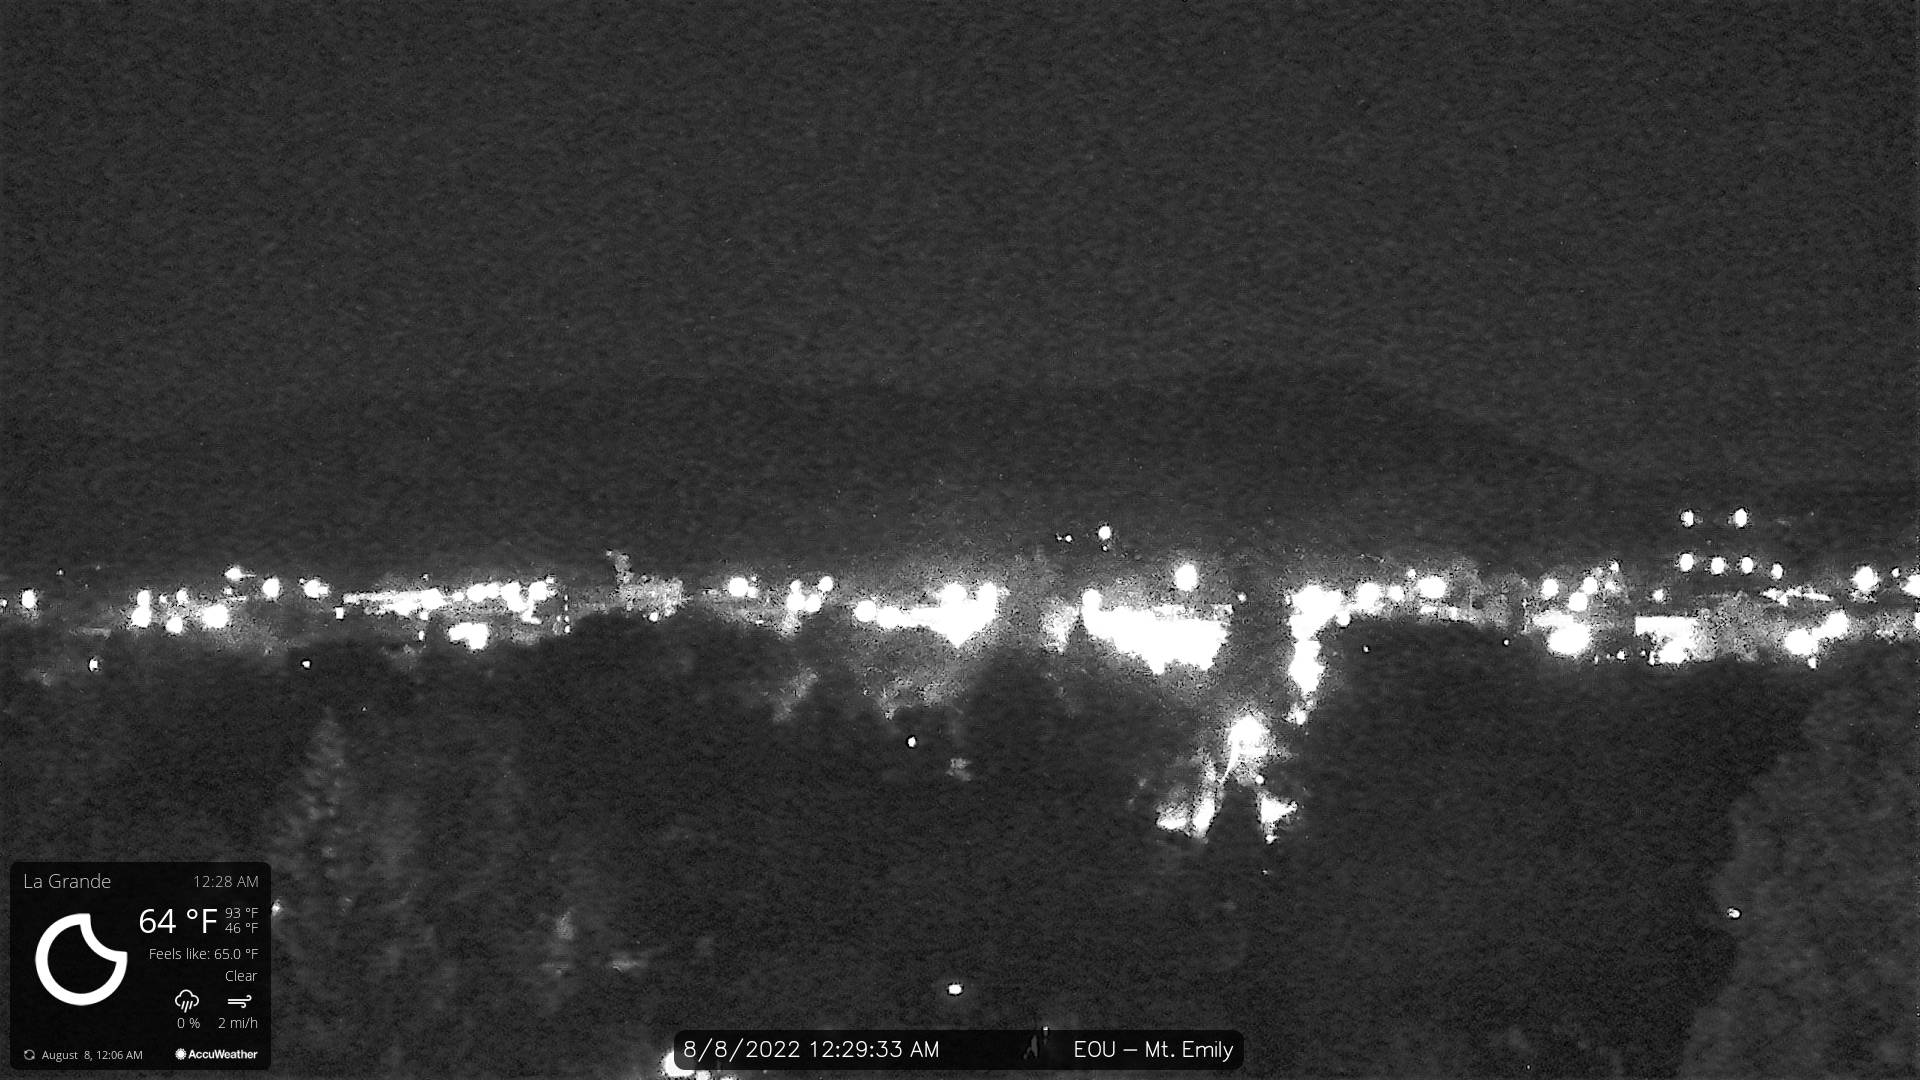 View from EOU Webcam